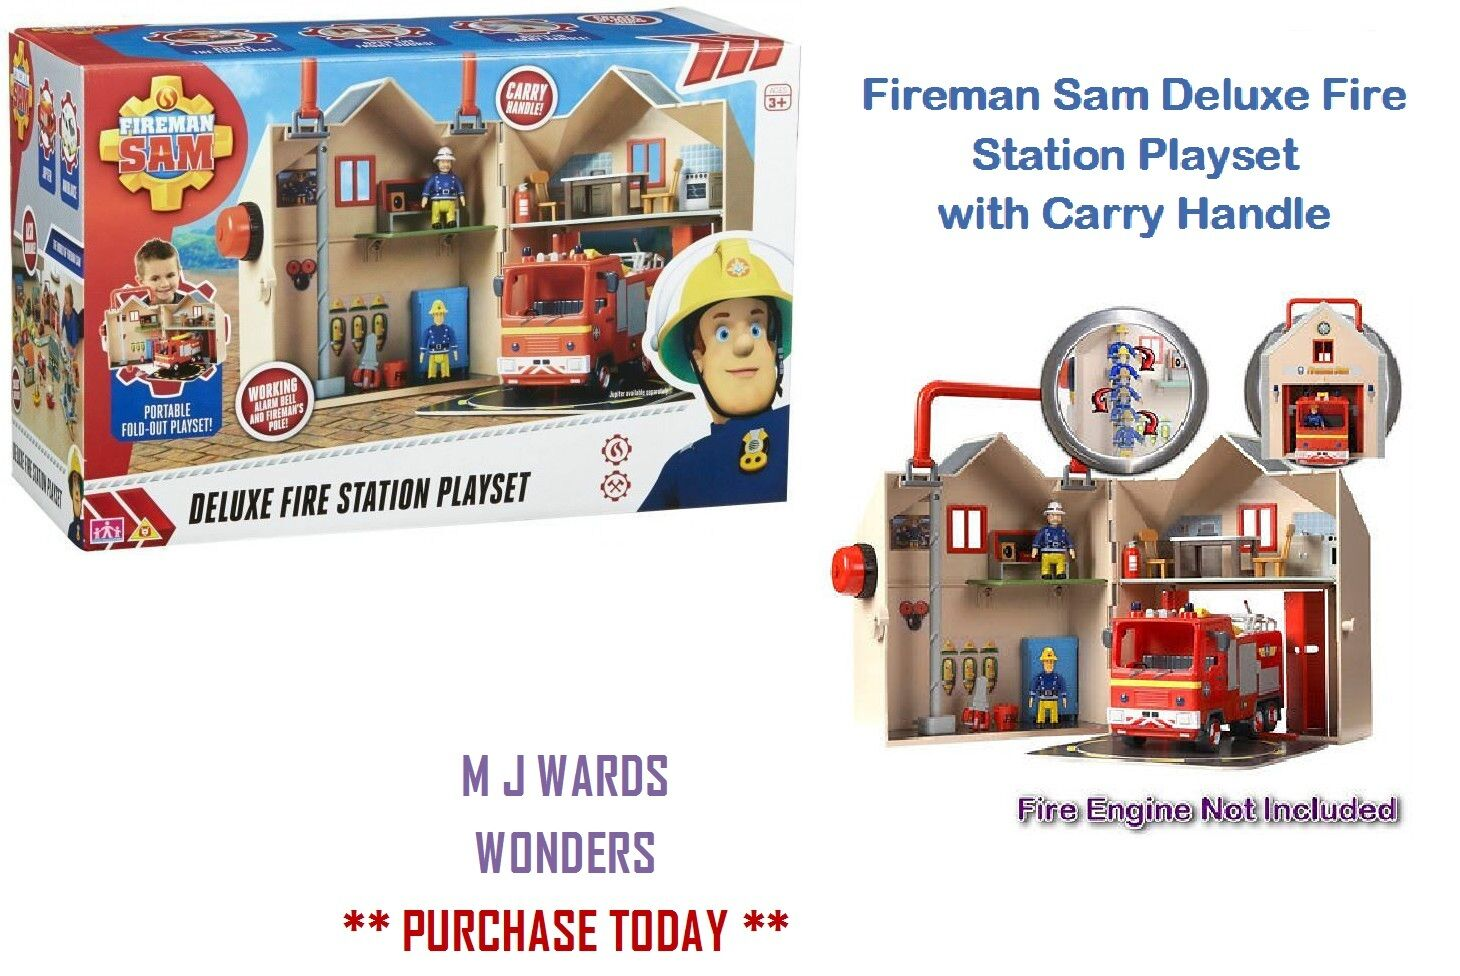 Fireman Sam Deluxe Fire Station Playset with Carry Handle